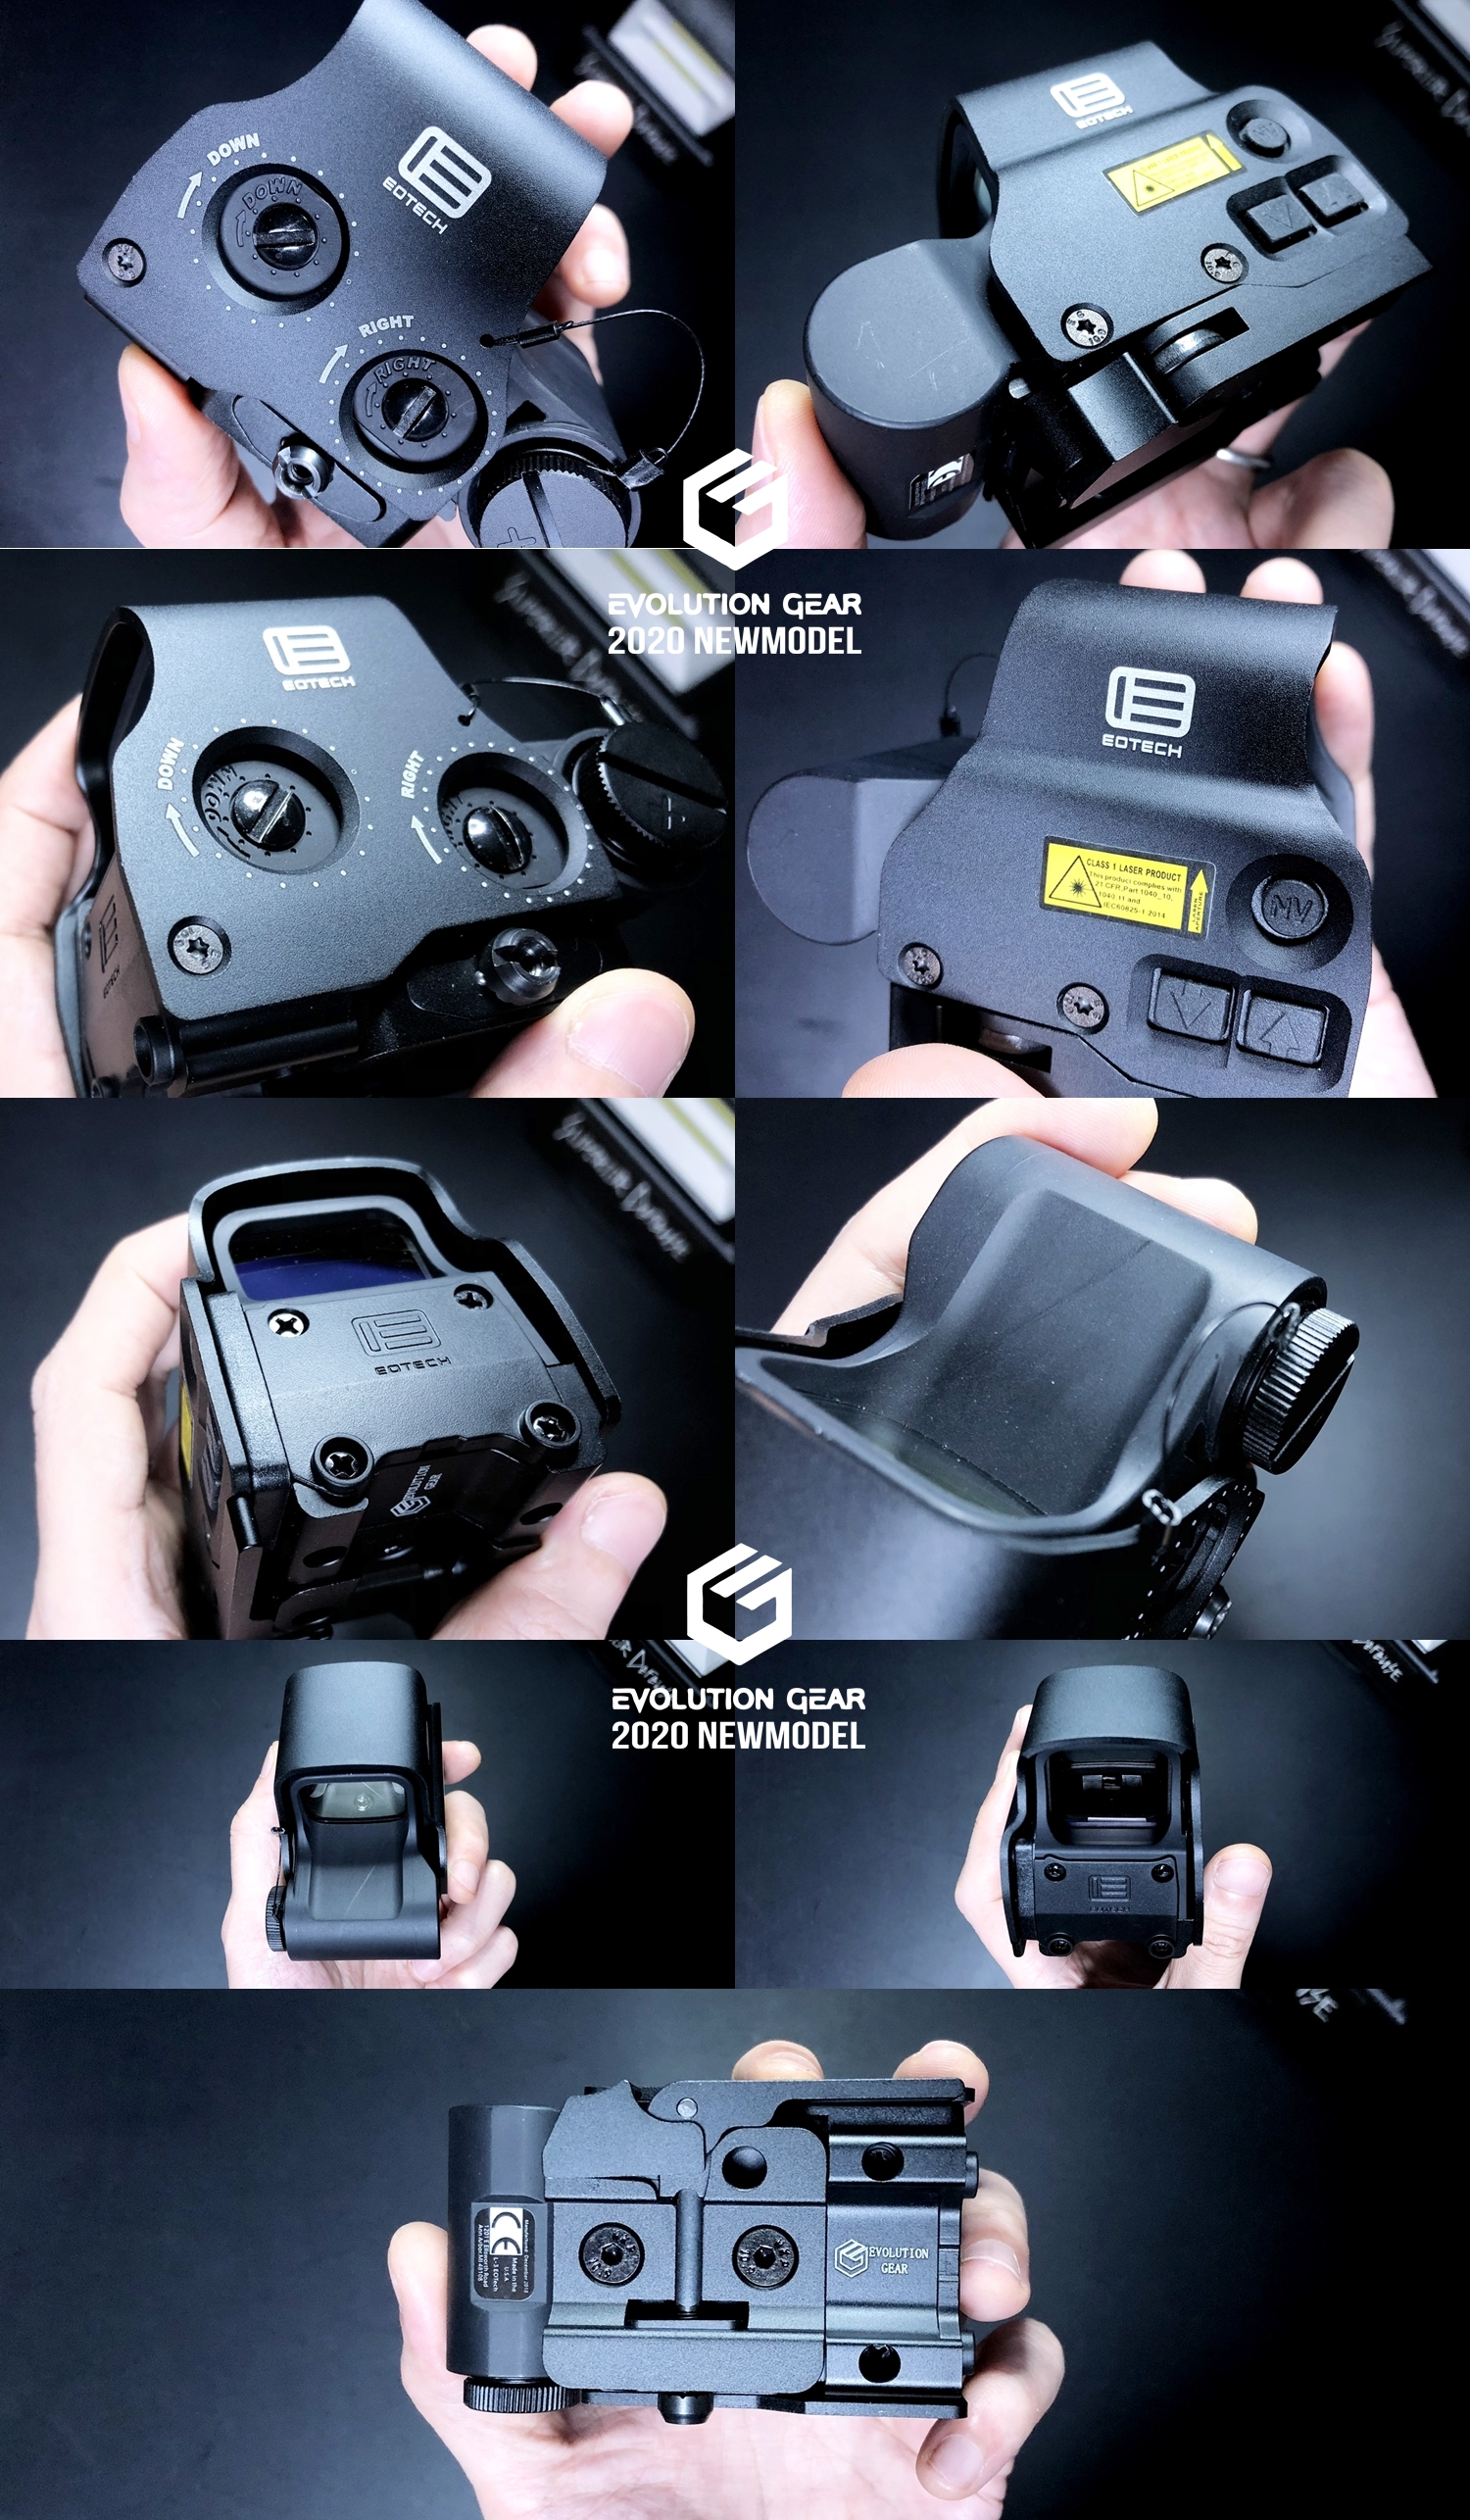 4 EVOLUTION GEAR 2020 改良版 EOTech EXPS3-0 NEW!! 最新リアルバージョンの改良点を徹底検証だ!! 新エボギア & 旧エボギア & 実物 イオテック ホロサイト!! 開封 比較 検証 取付 レビュー!!